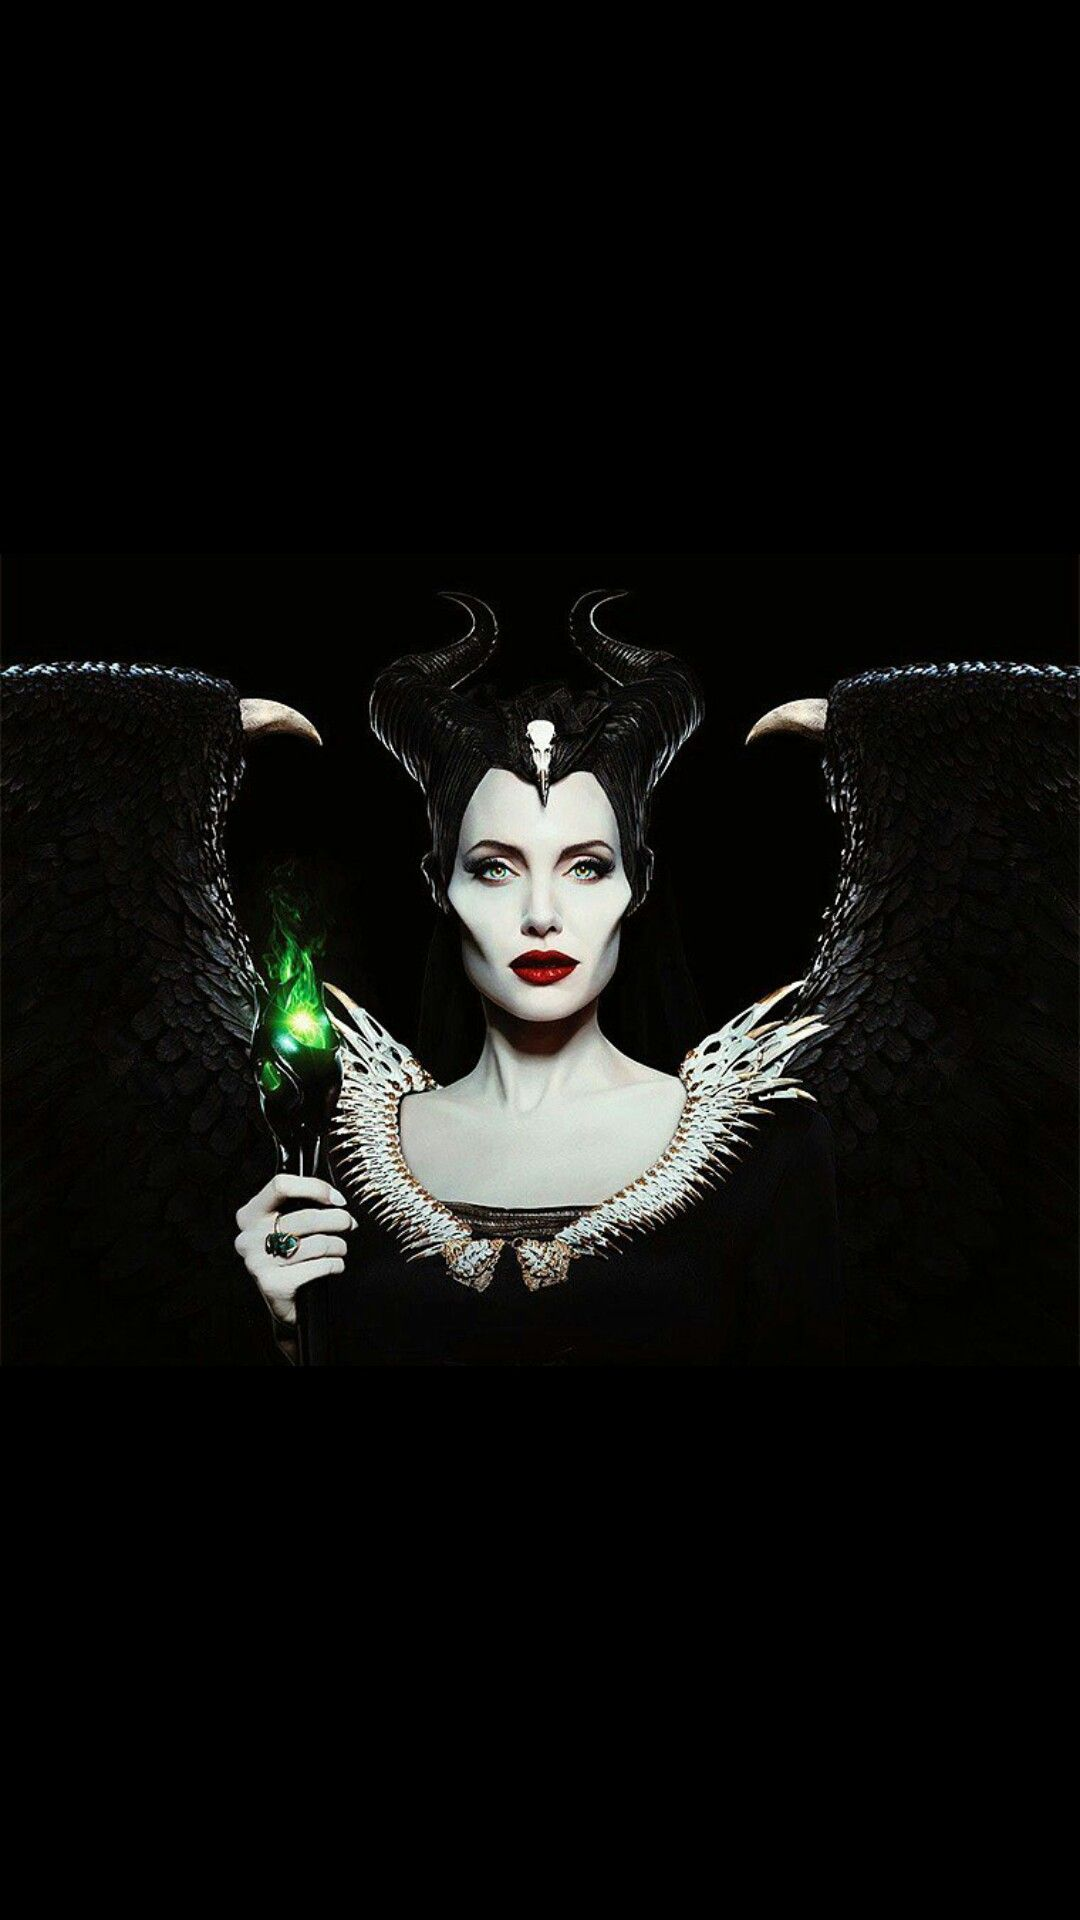 Pin By Ashley Bennett On Disney Wallpapers Angelina Jolie Maleficent Disney Maleficent Maleficent Costume